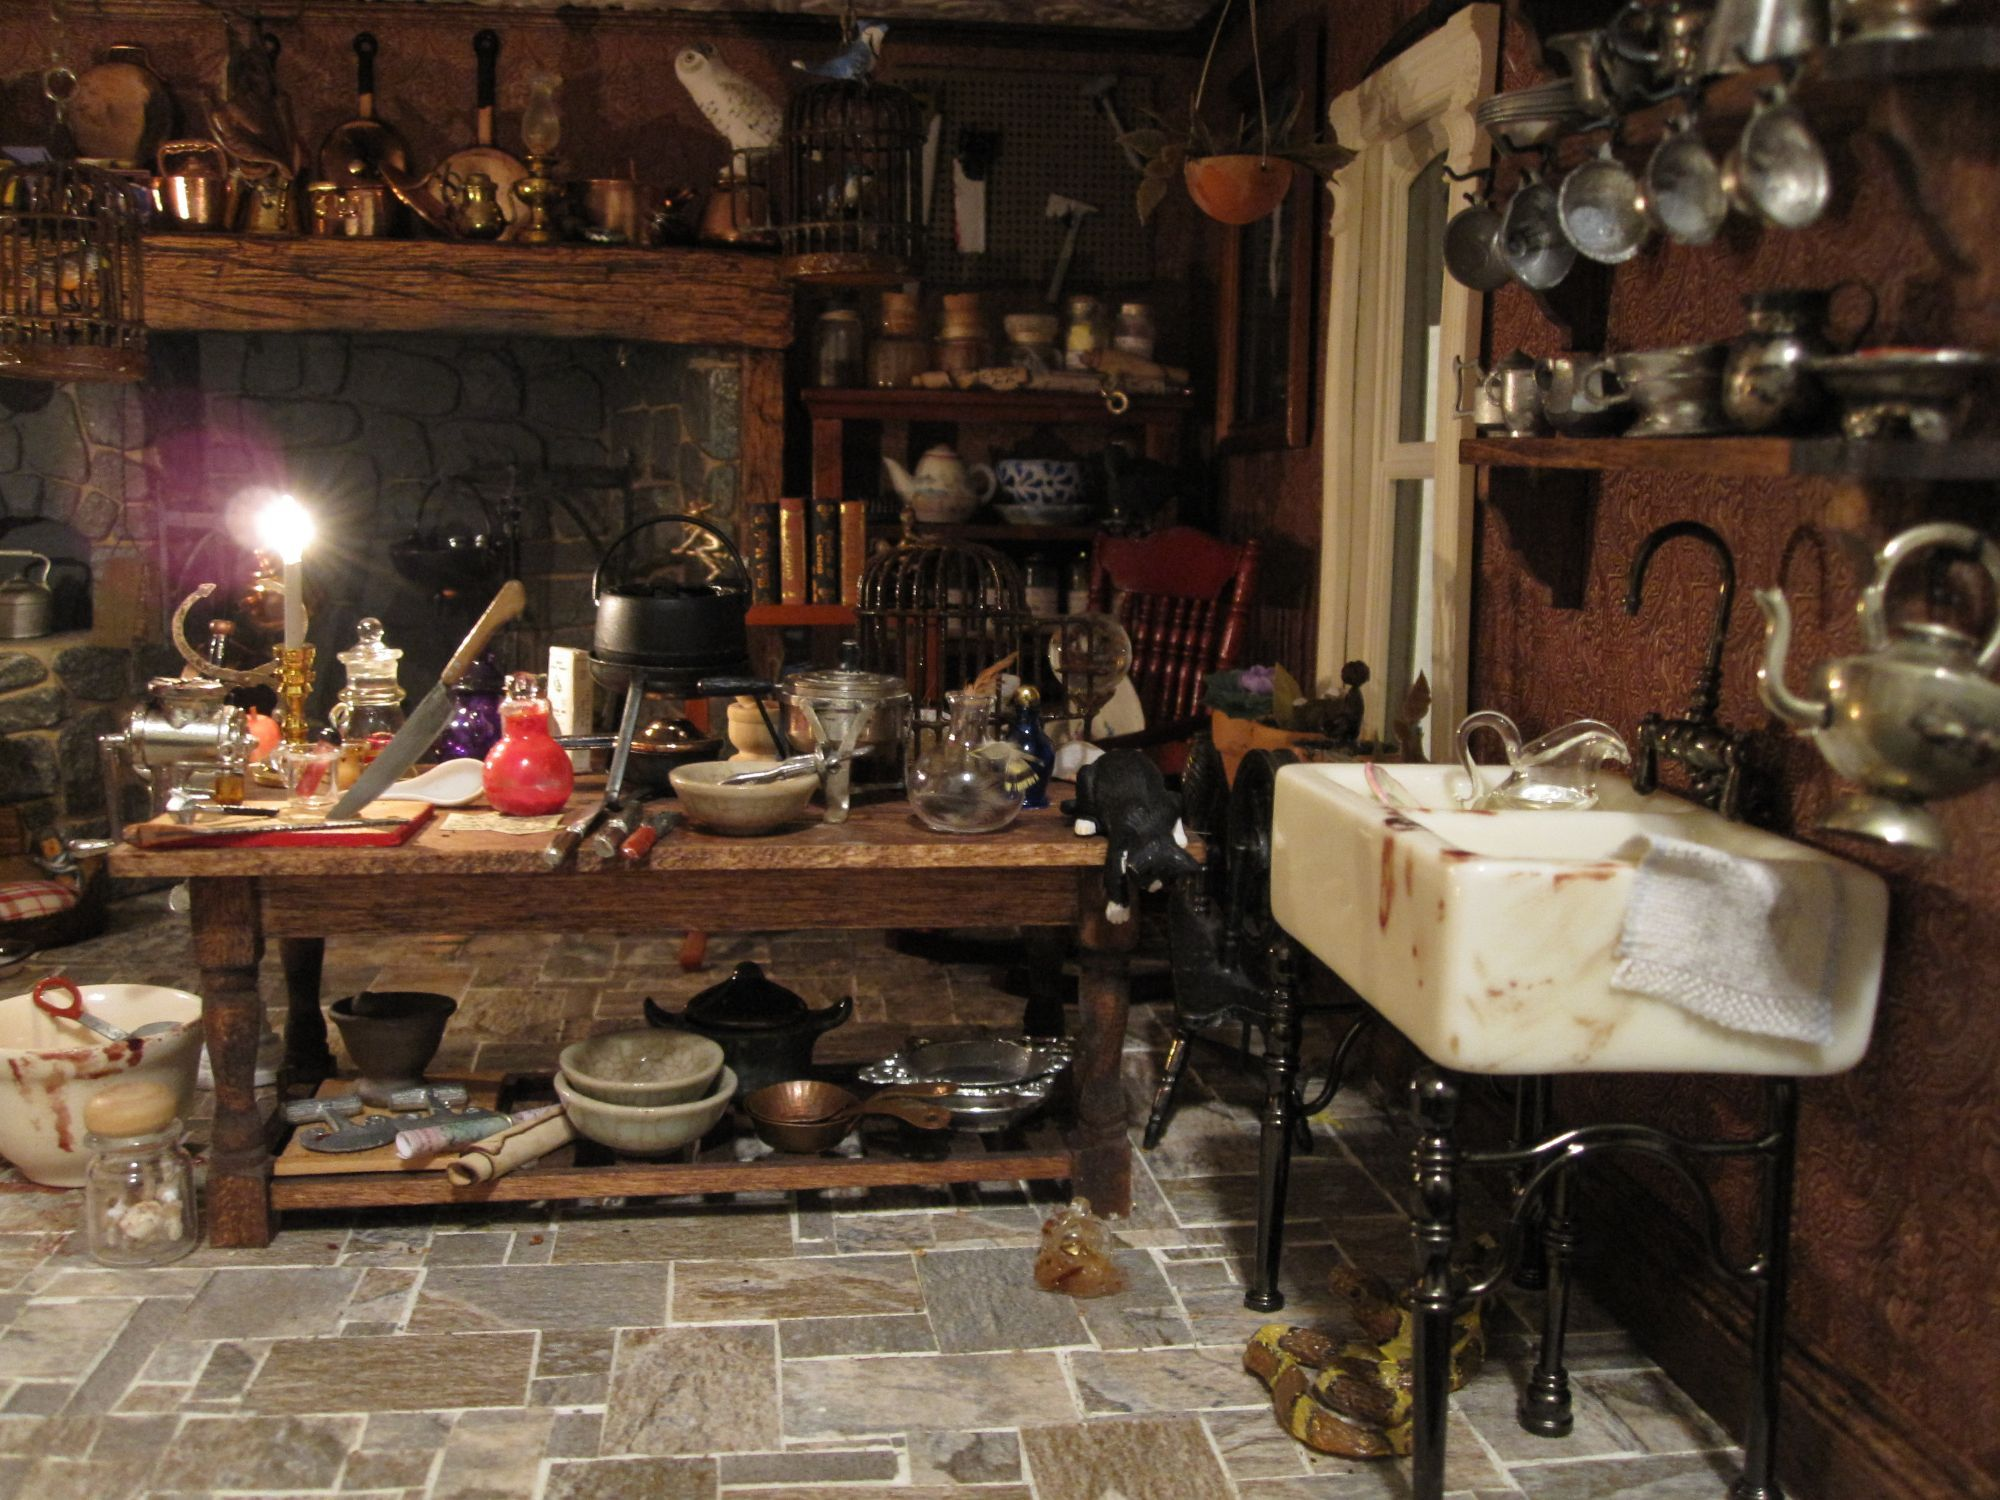 Witch kitchen by Gayle Palama | Wicca | Pinterest | Hexen